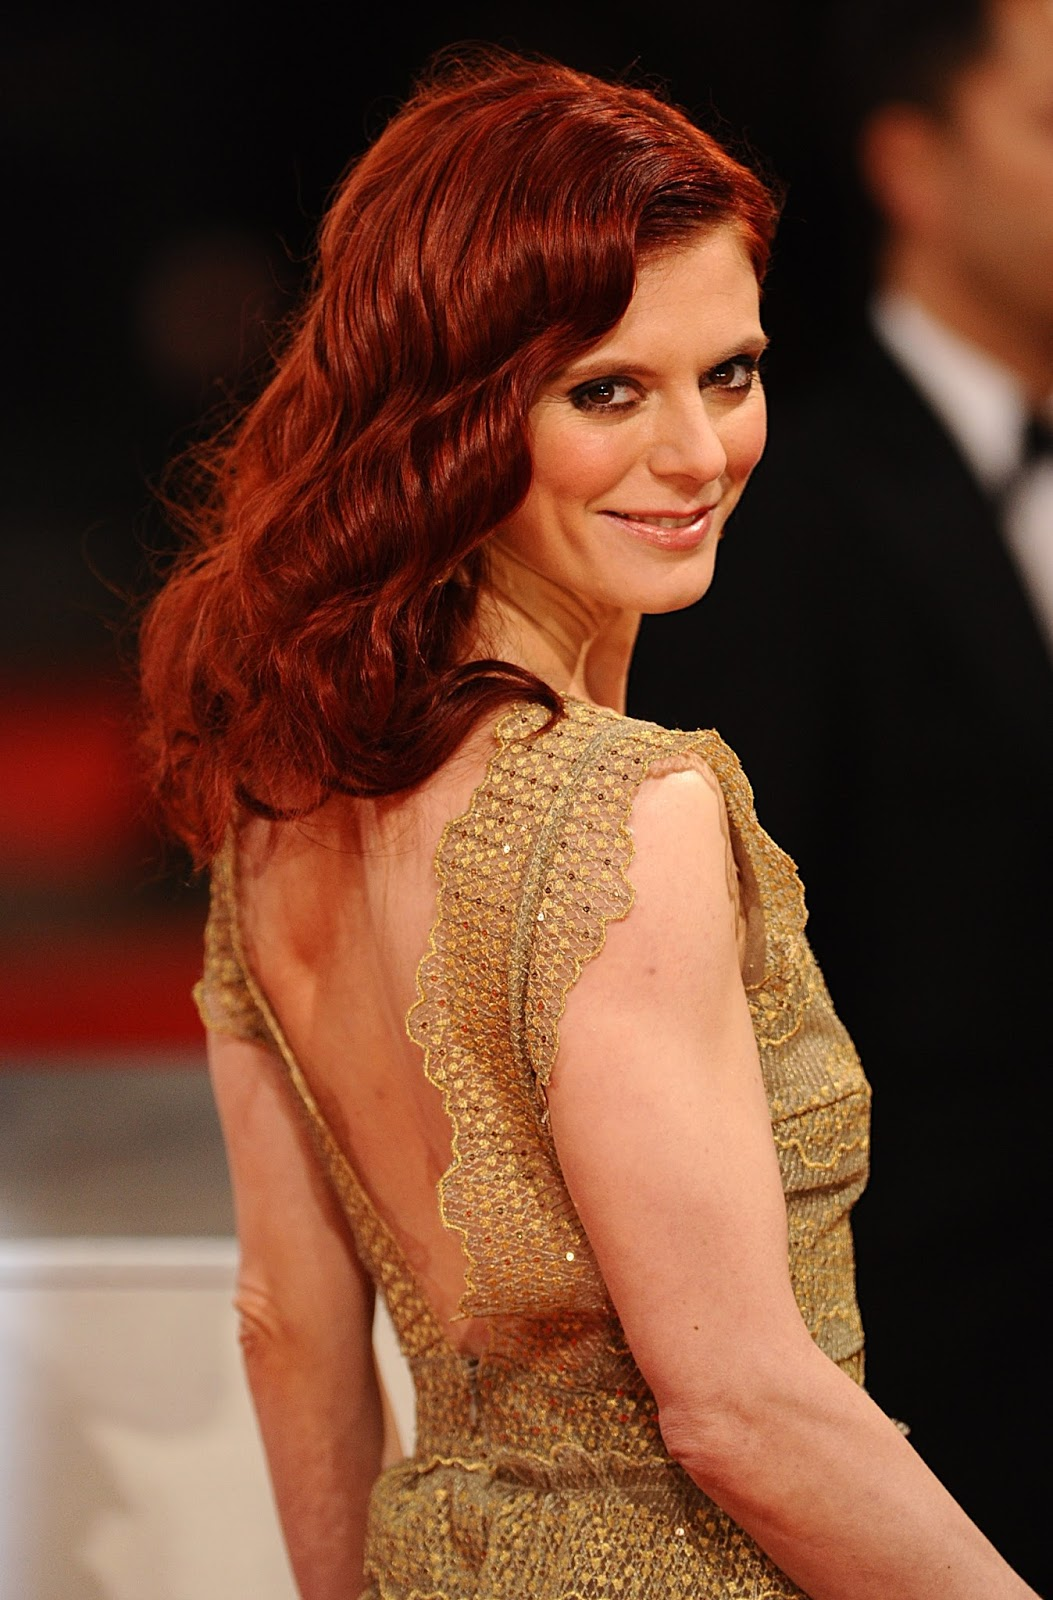 Emilia Fox Cute Hq Photos Orange British Academy Film Awards 2012